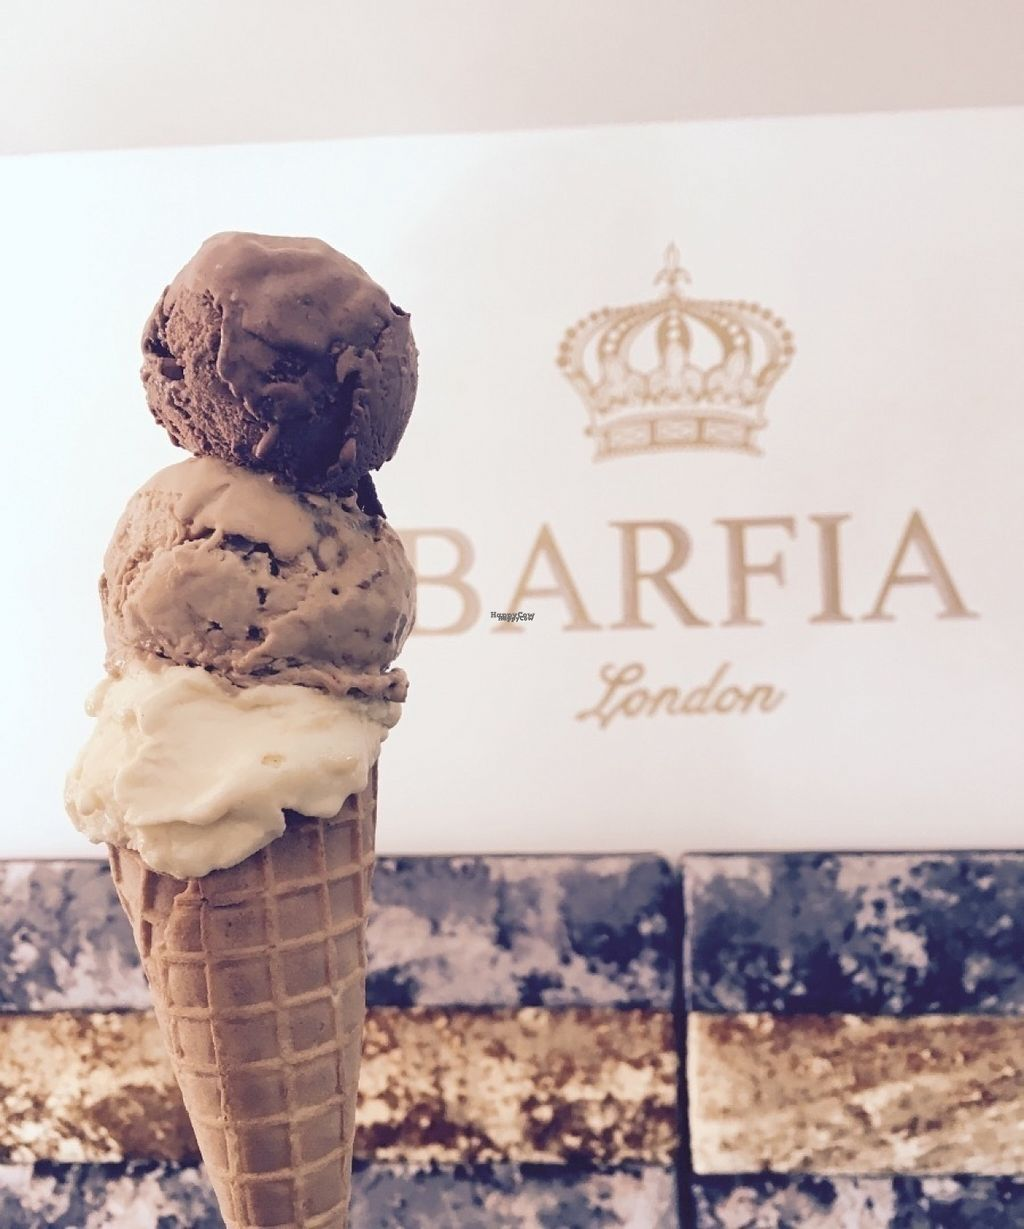 """Photo of Barfia  by <a href=""""/members/profile/VeganIndian"""">VeganIndian</a> <br/>Gelato three scoops <br/> August 14, 2016  - <a href='/contact/abuse/image/75988/168477'>Report</a>"""